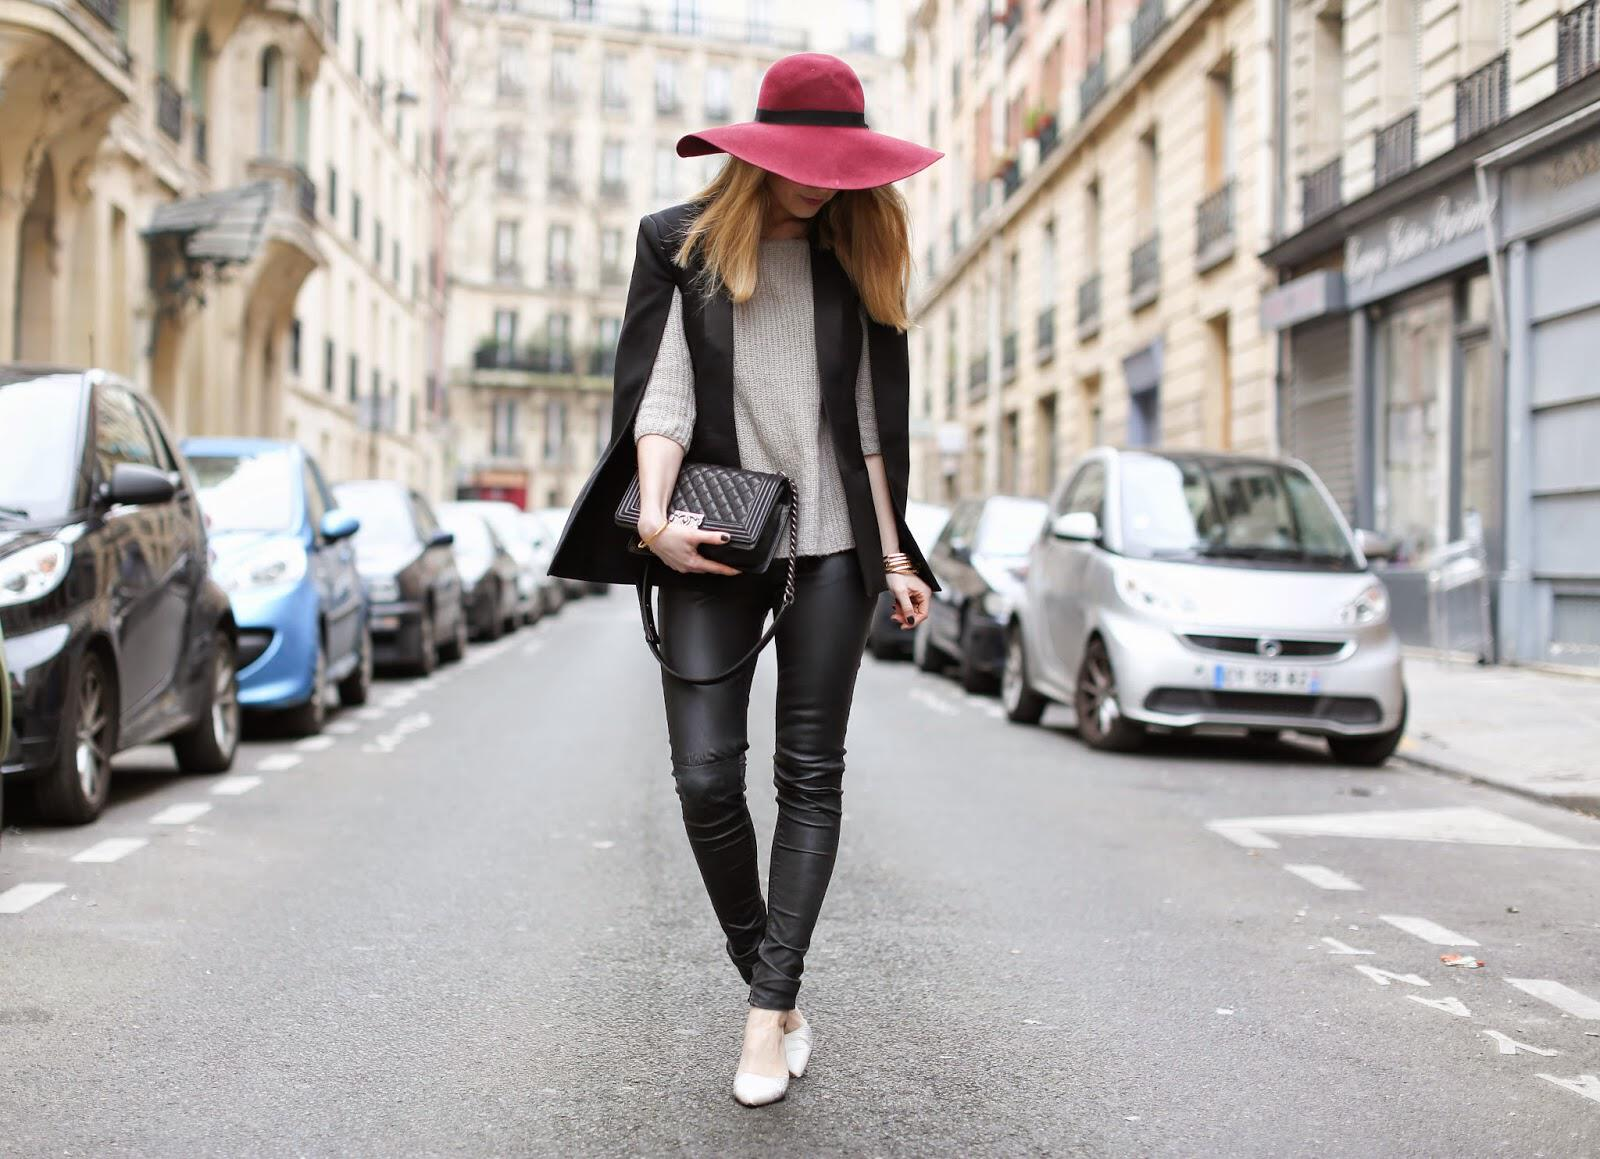 7 stylish outfits hat4 - 7 stylish outfits with a hat